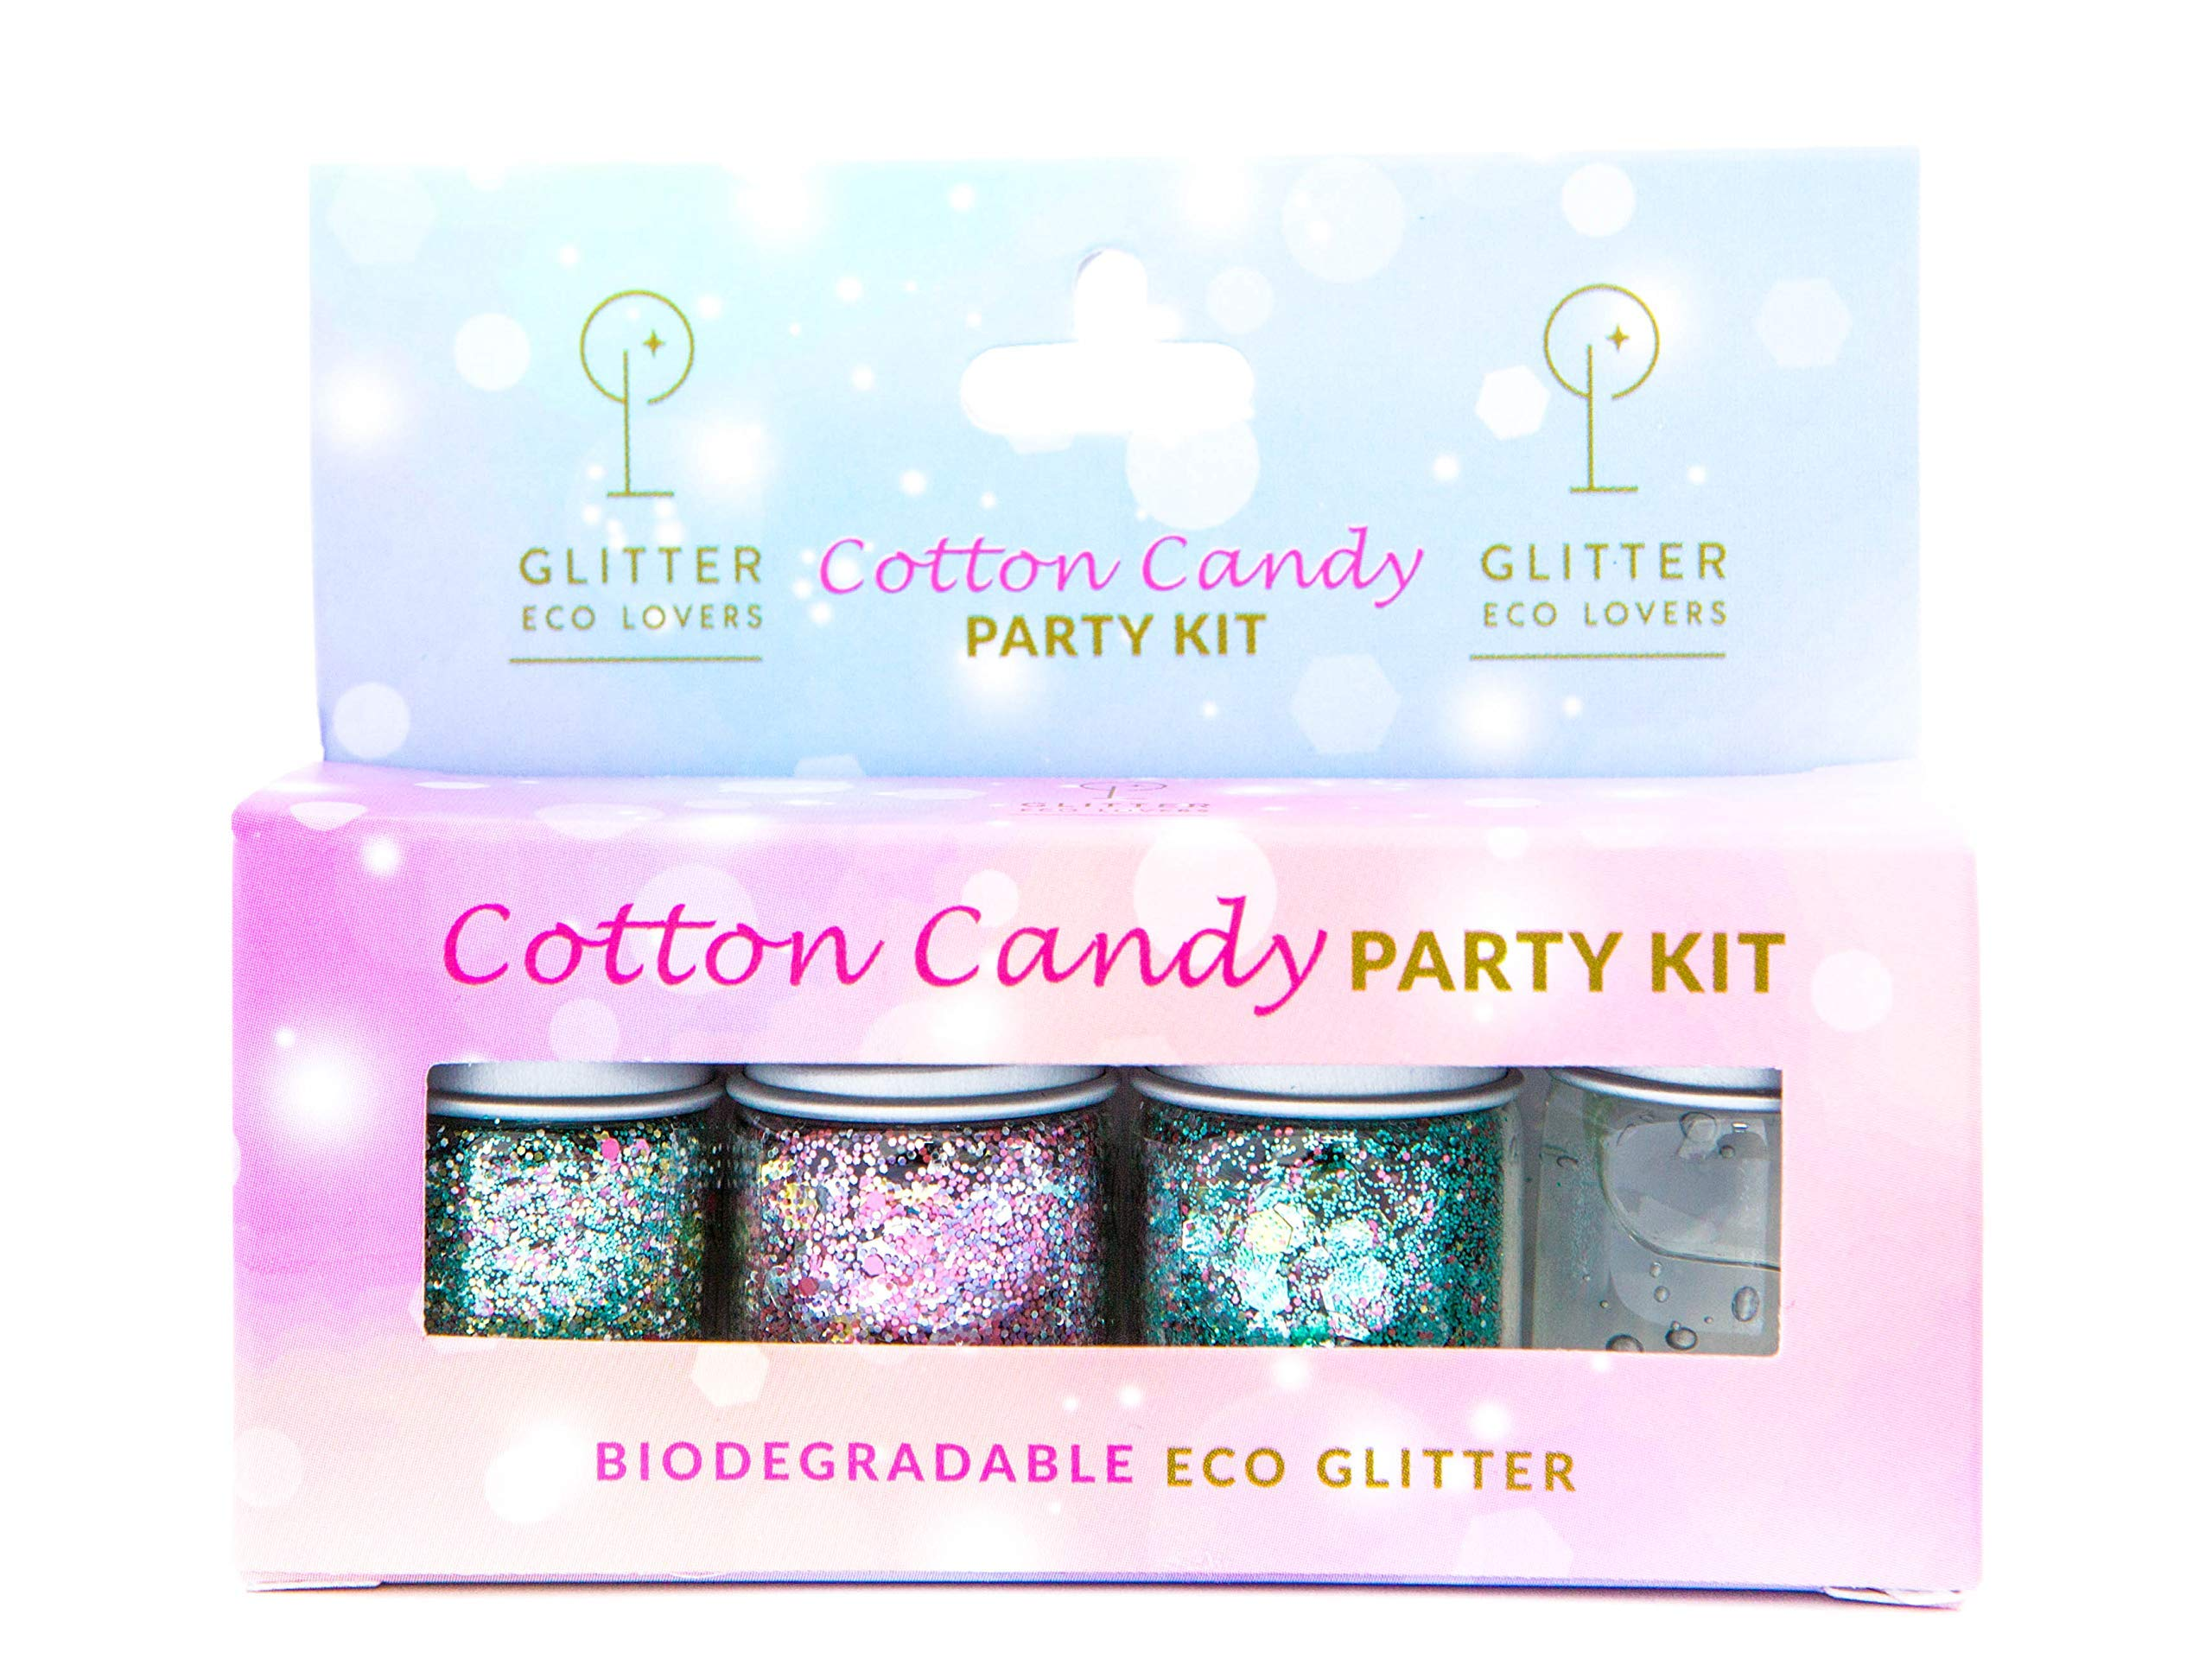 Eco glitter PARTY KIT for skin, hair and nails - set of 3 glitter mixes (4g each) + 1 aloe vera glitter fix - perfect for holidays, festivals and parties where you glitter up.